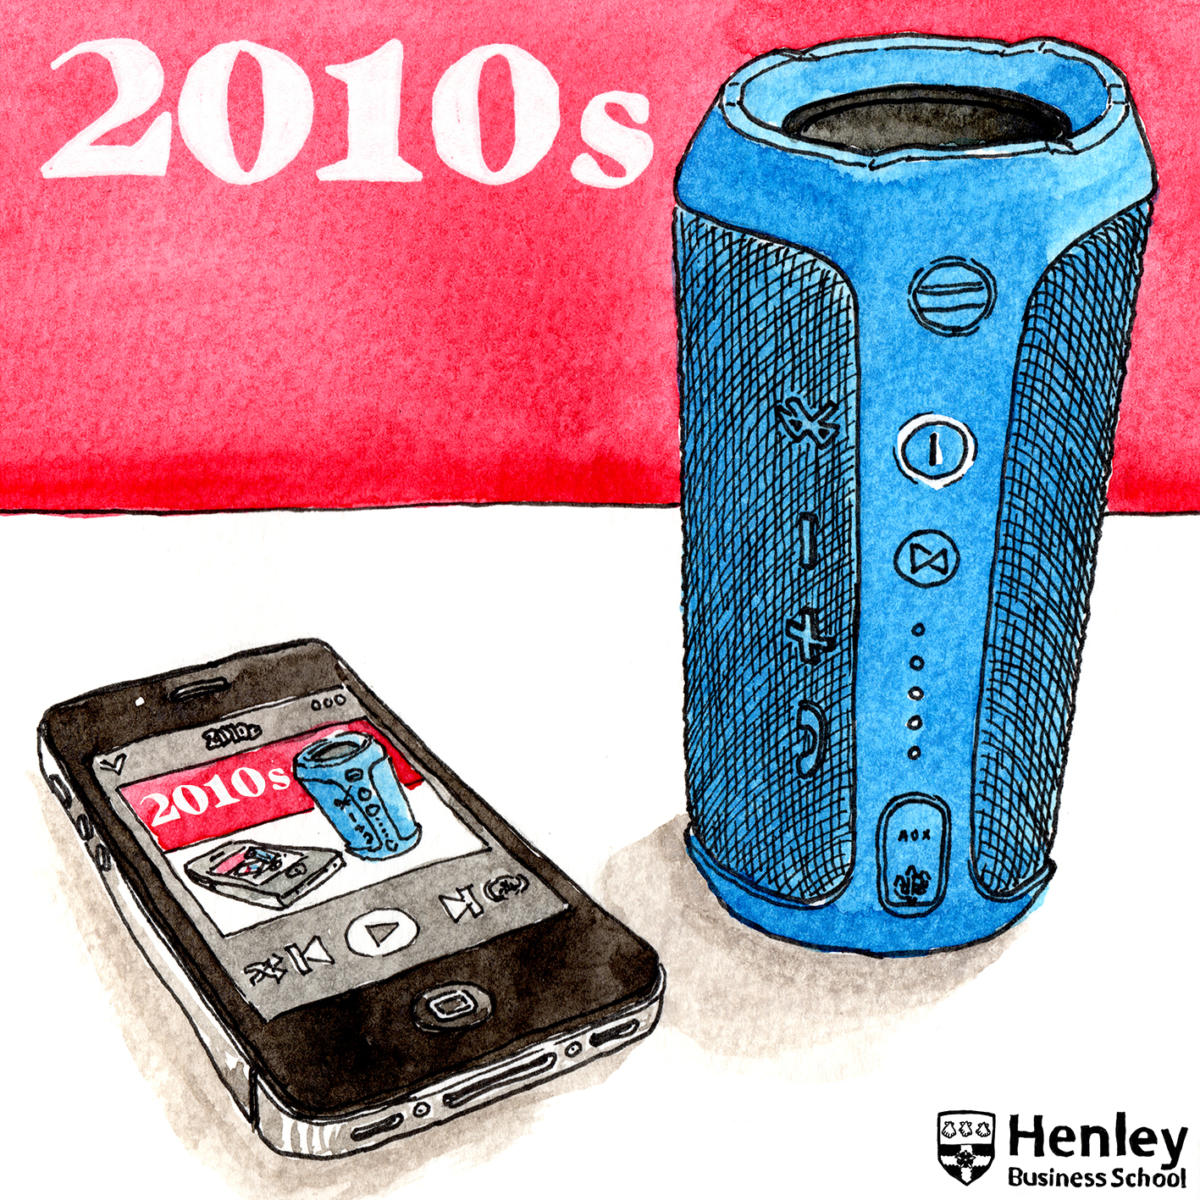 The 2010s